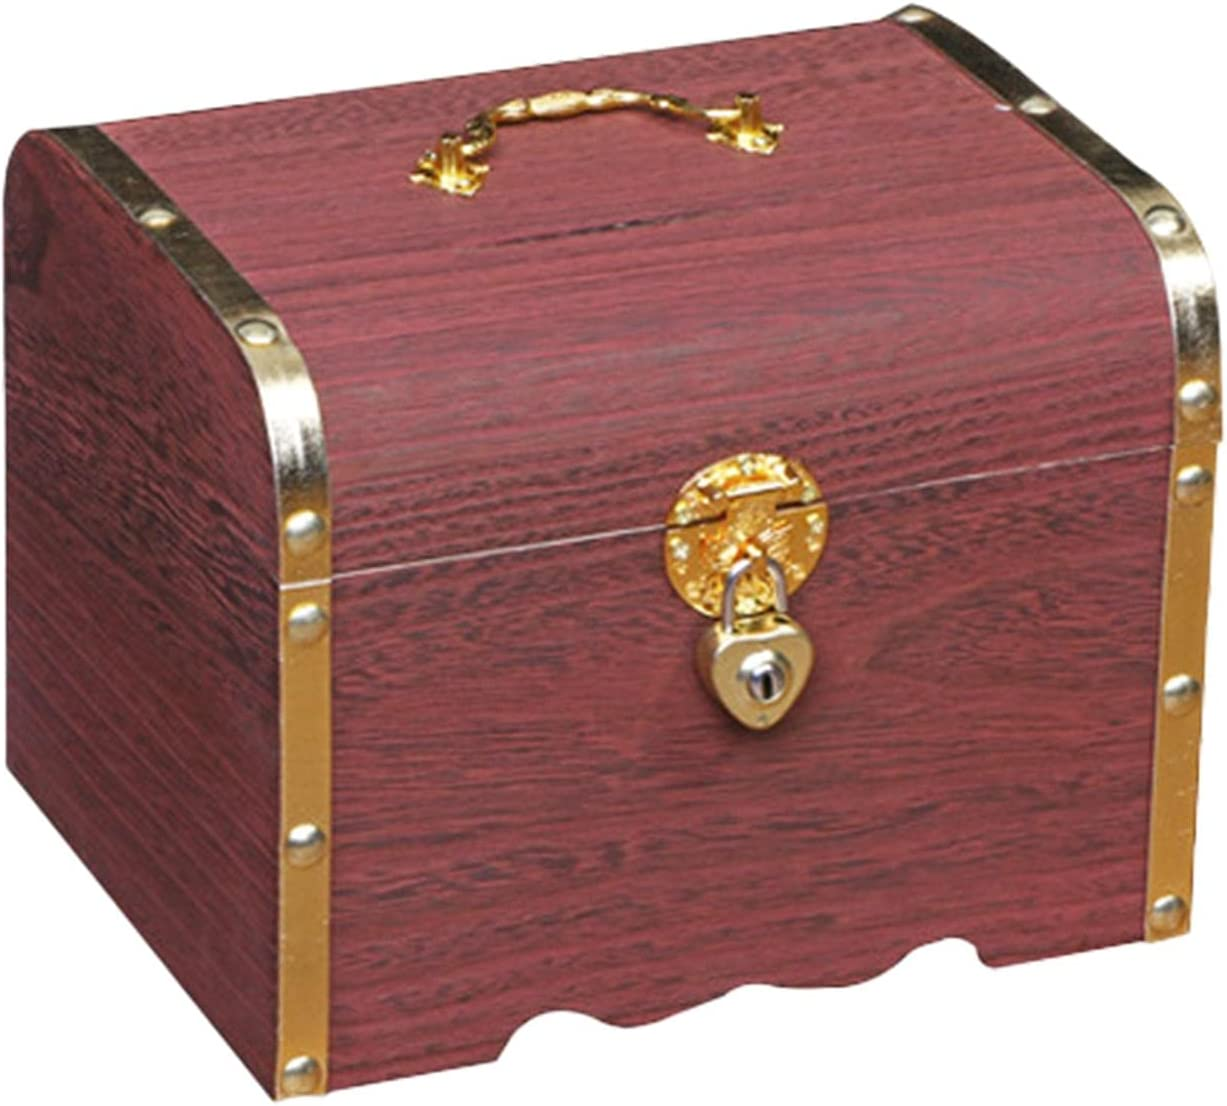 GEZICHTA Wooden Treasure Sales Chest Coin Vintage Free Shipping New P Box